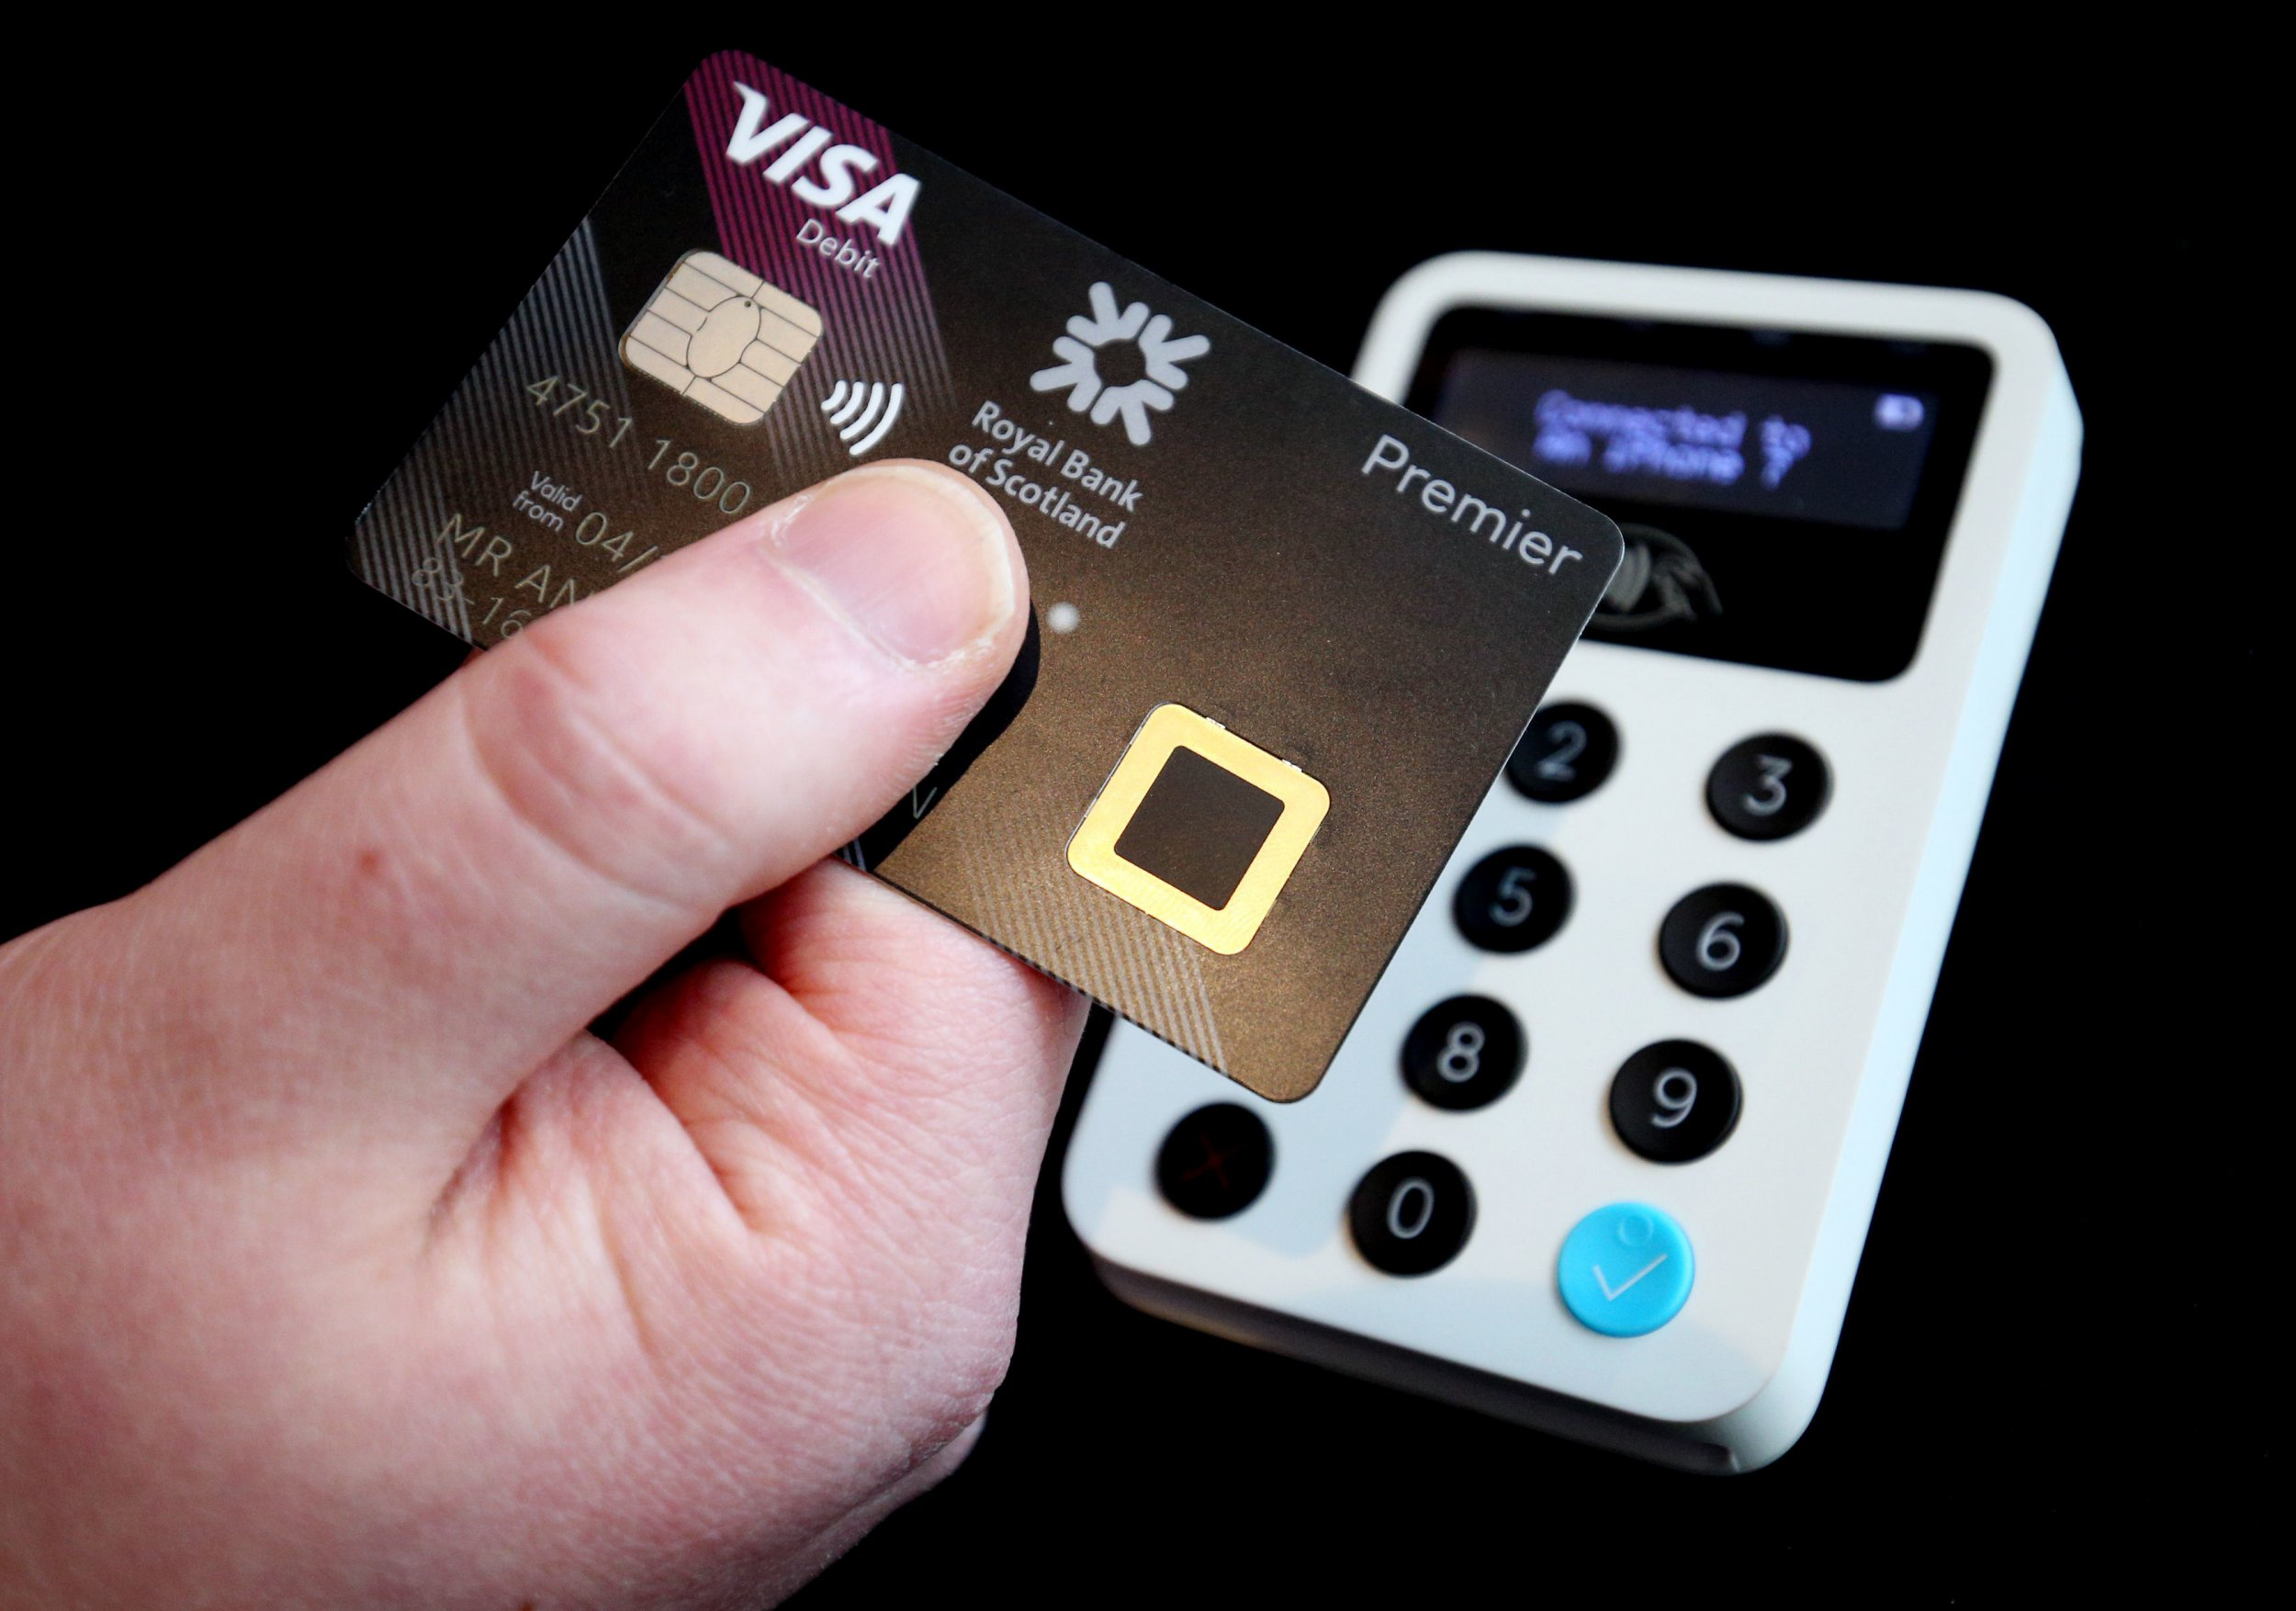 No more PIN payments as fingerprint-scanning bank cards launch in the UK